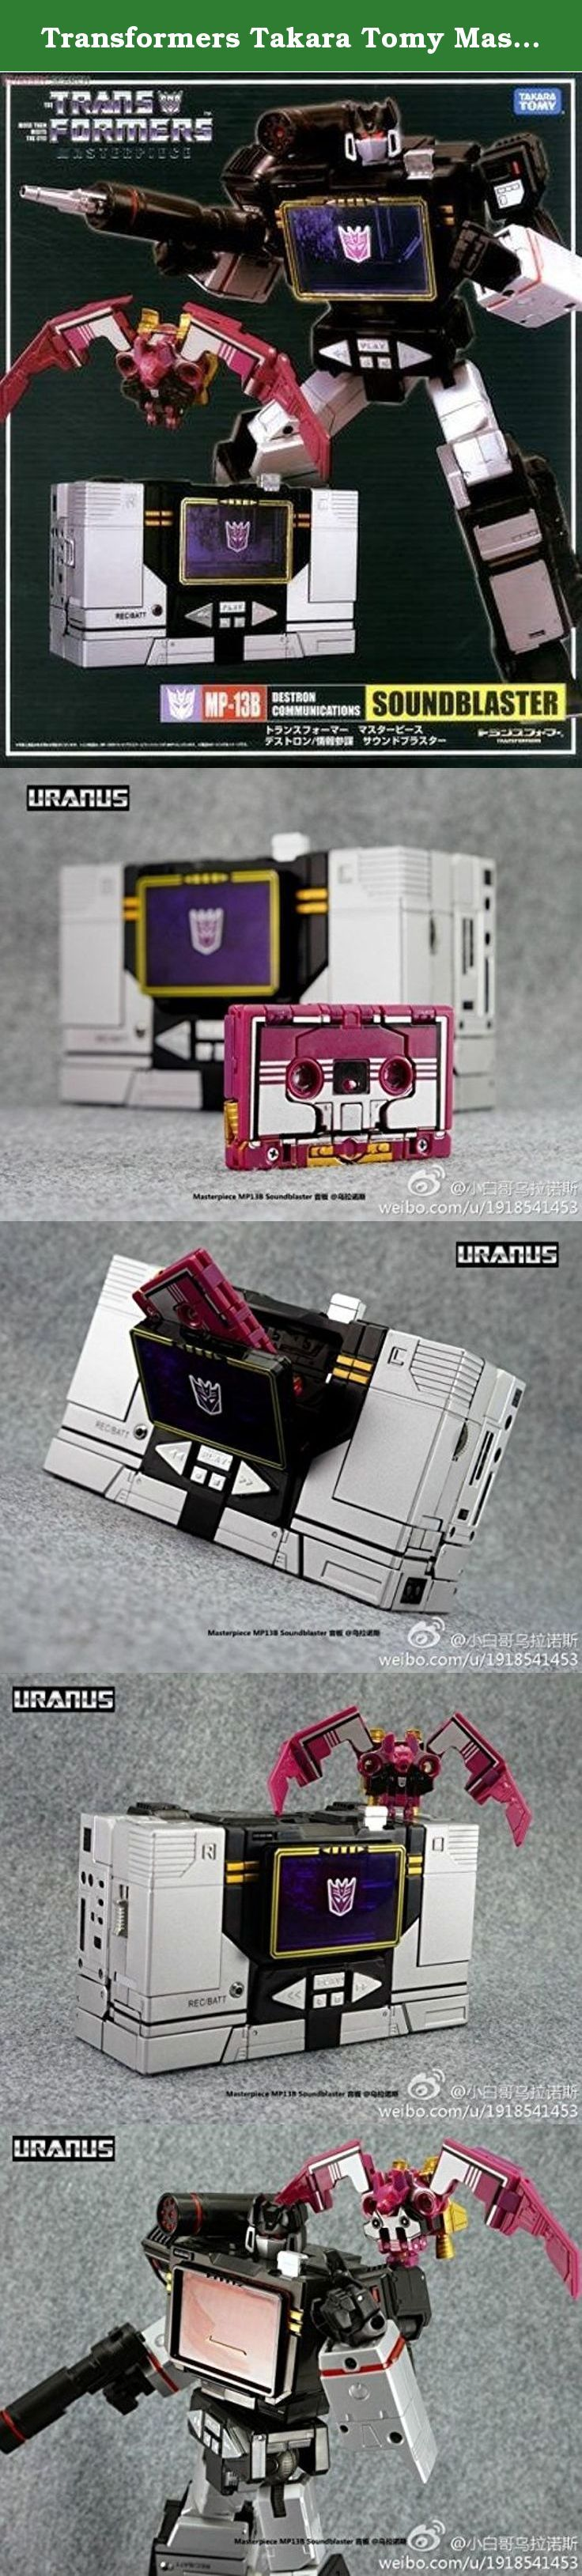 Transformers Takara Tomy Masterpiece Mp-13b Soundblaster & Ratbat. Transformers Takara Tomy Masterpiece Mp-13b Soundblaster & Ratbat.